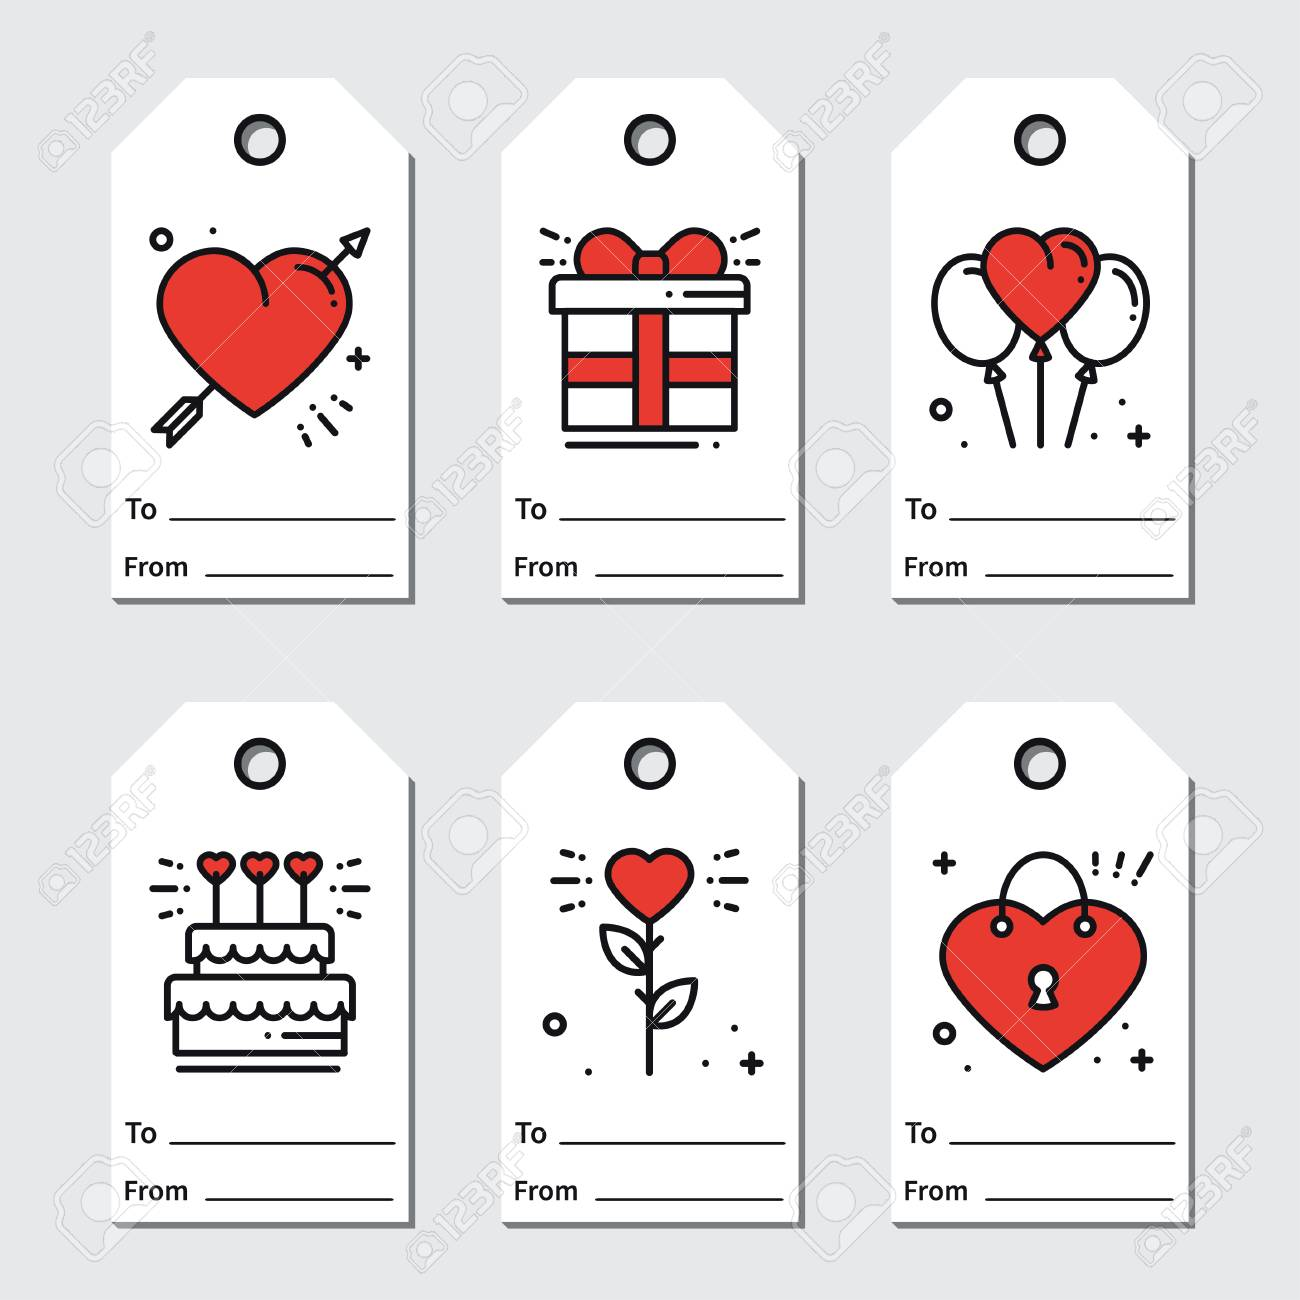 picture relating to Printable Valentine Tag titled St Valentines working day present tags. Printable tags variety. Take pleasure in,..